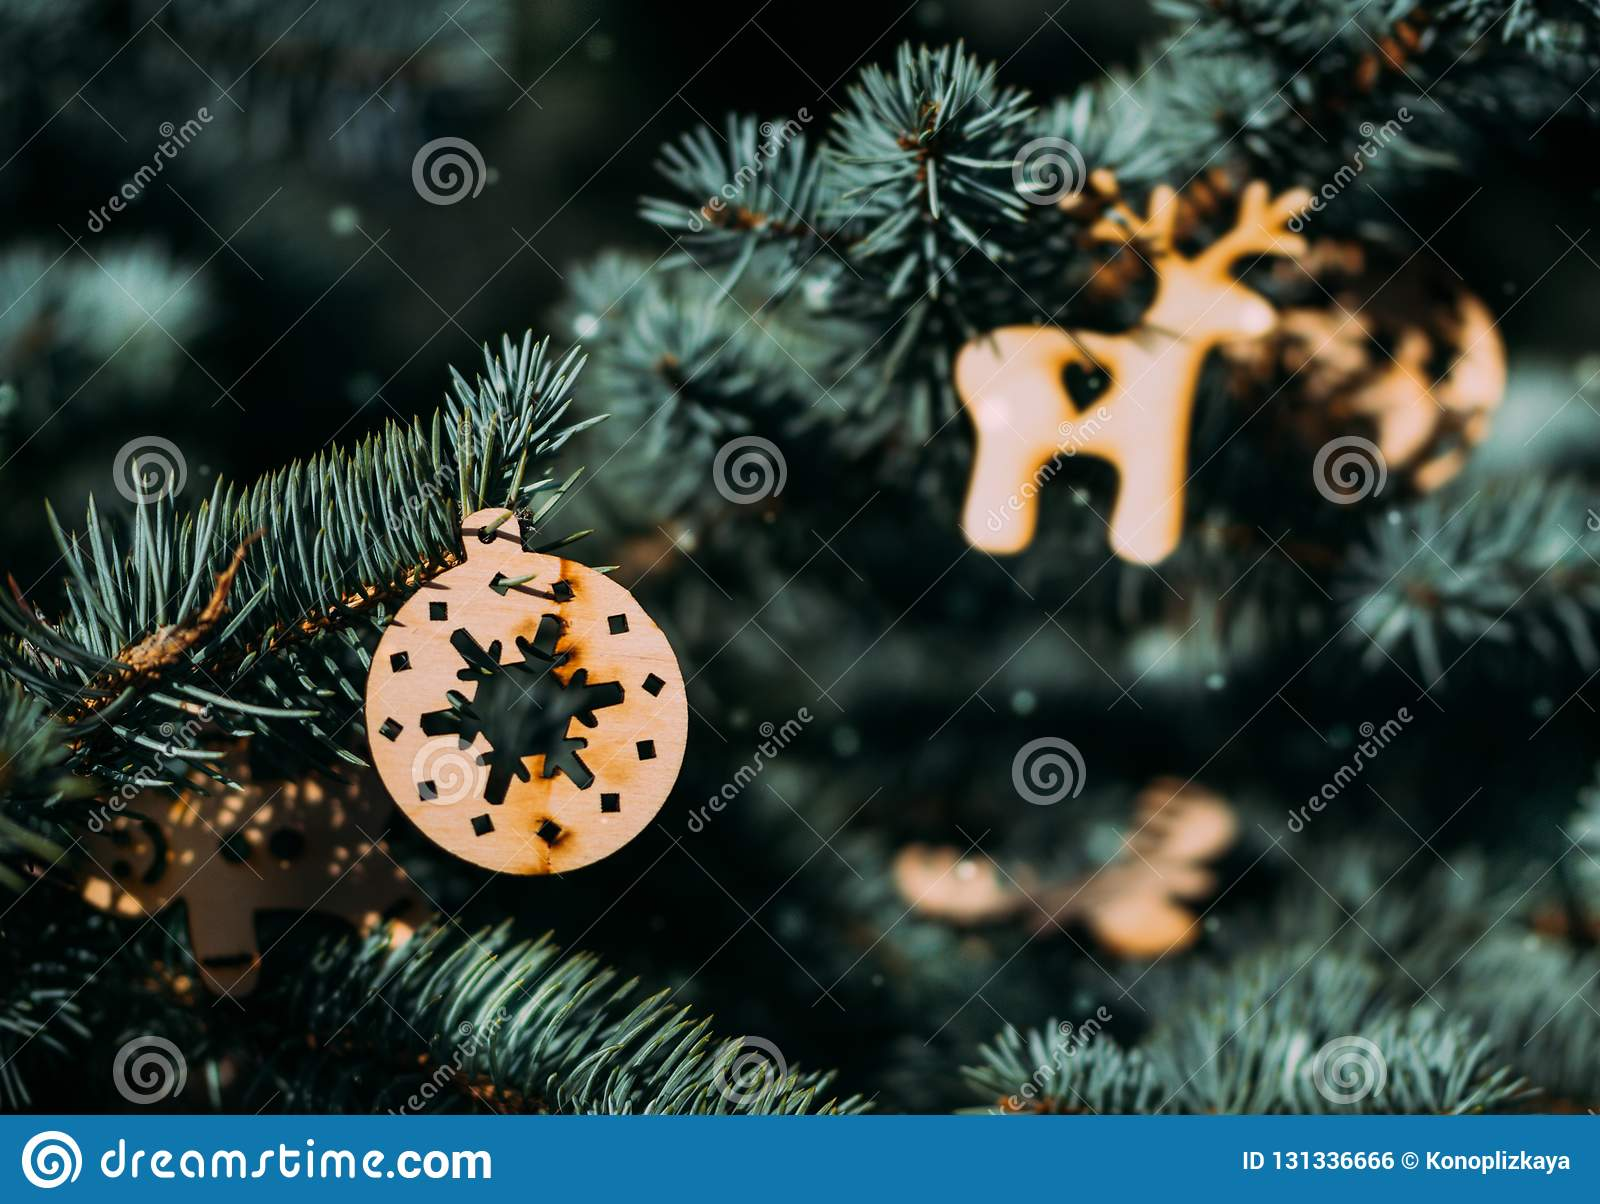 Christmas Tree And Beautiful Christmas Decorations Stock Photo Image Of Nativity Gingerbread 131336666